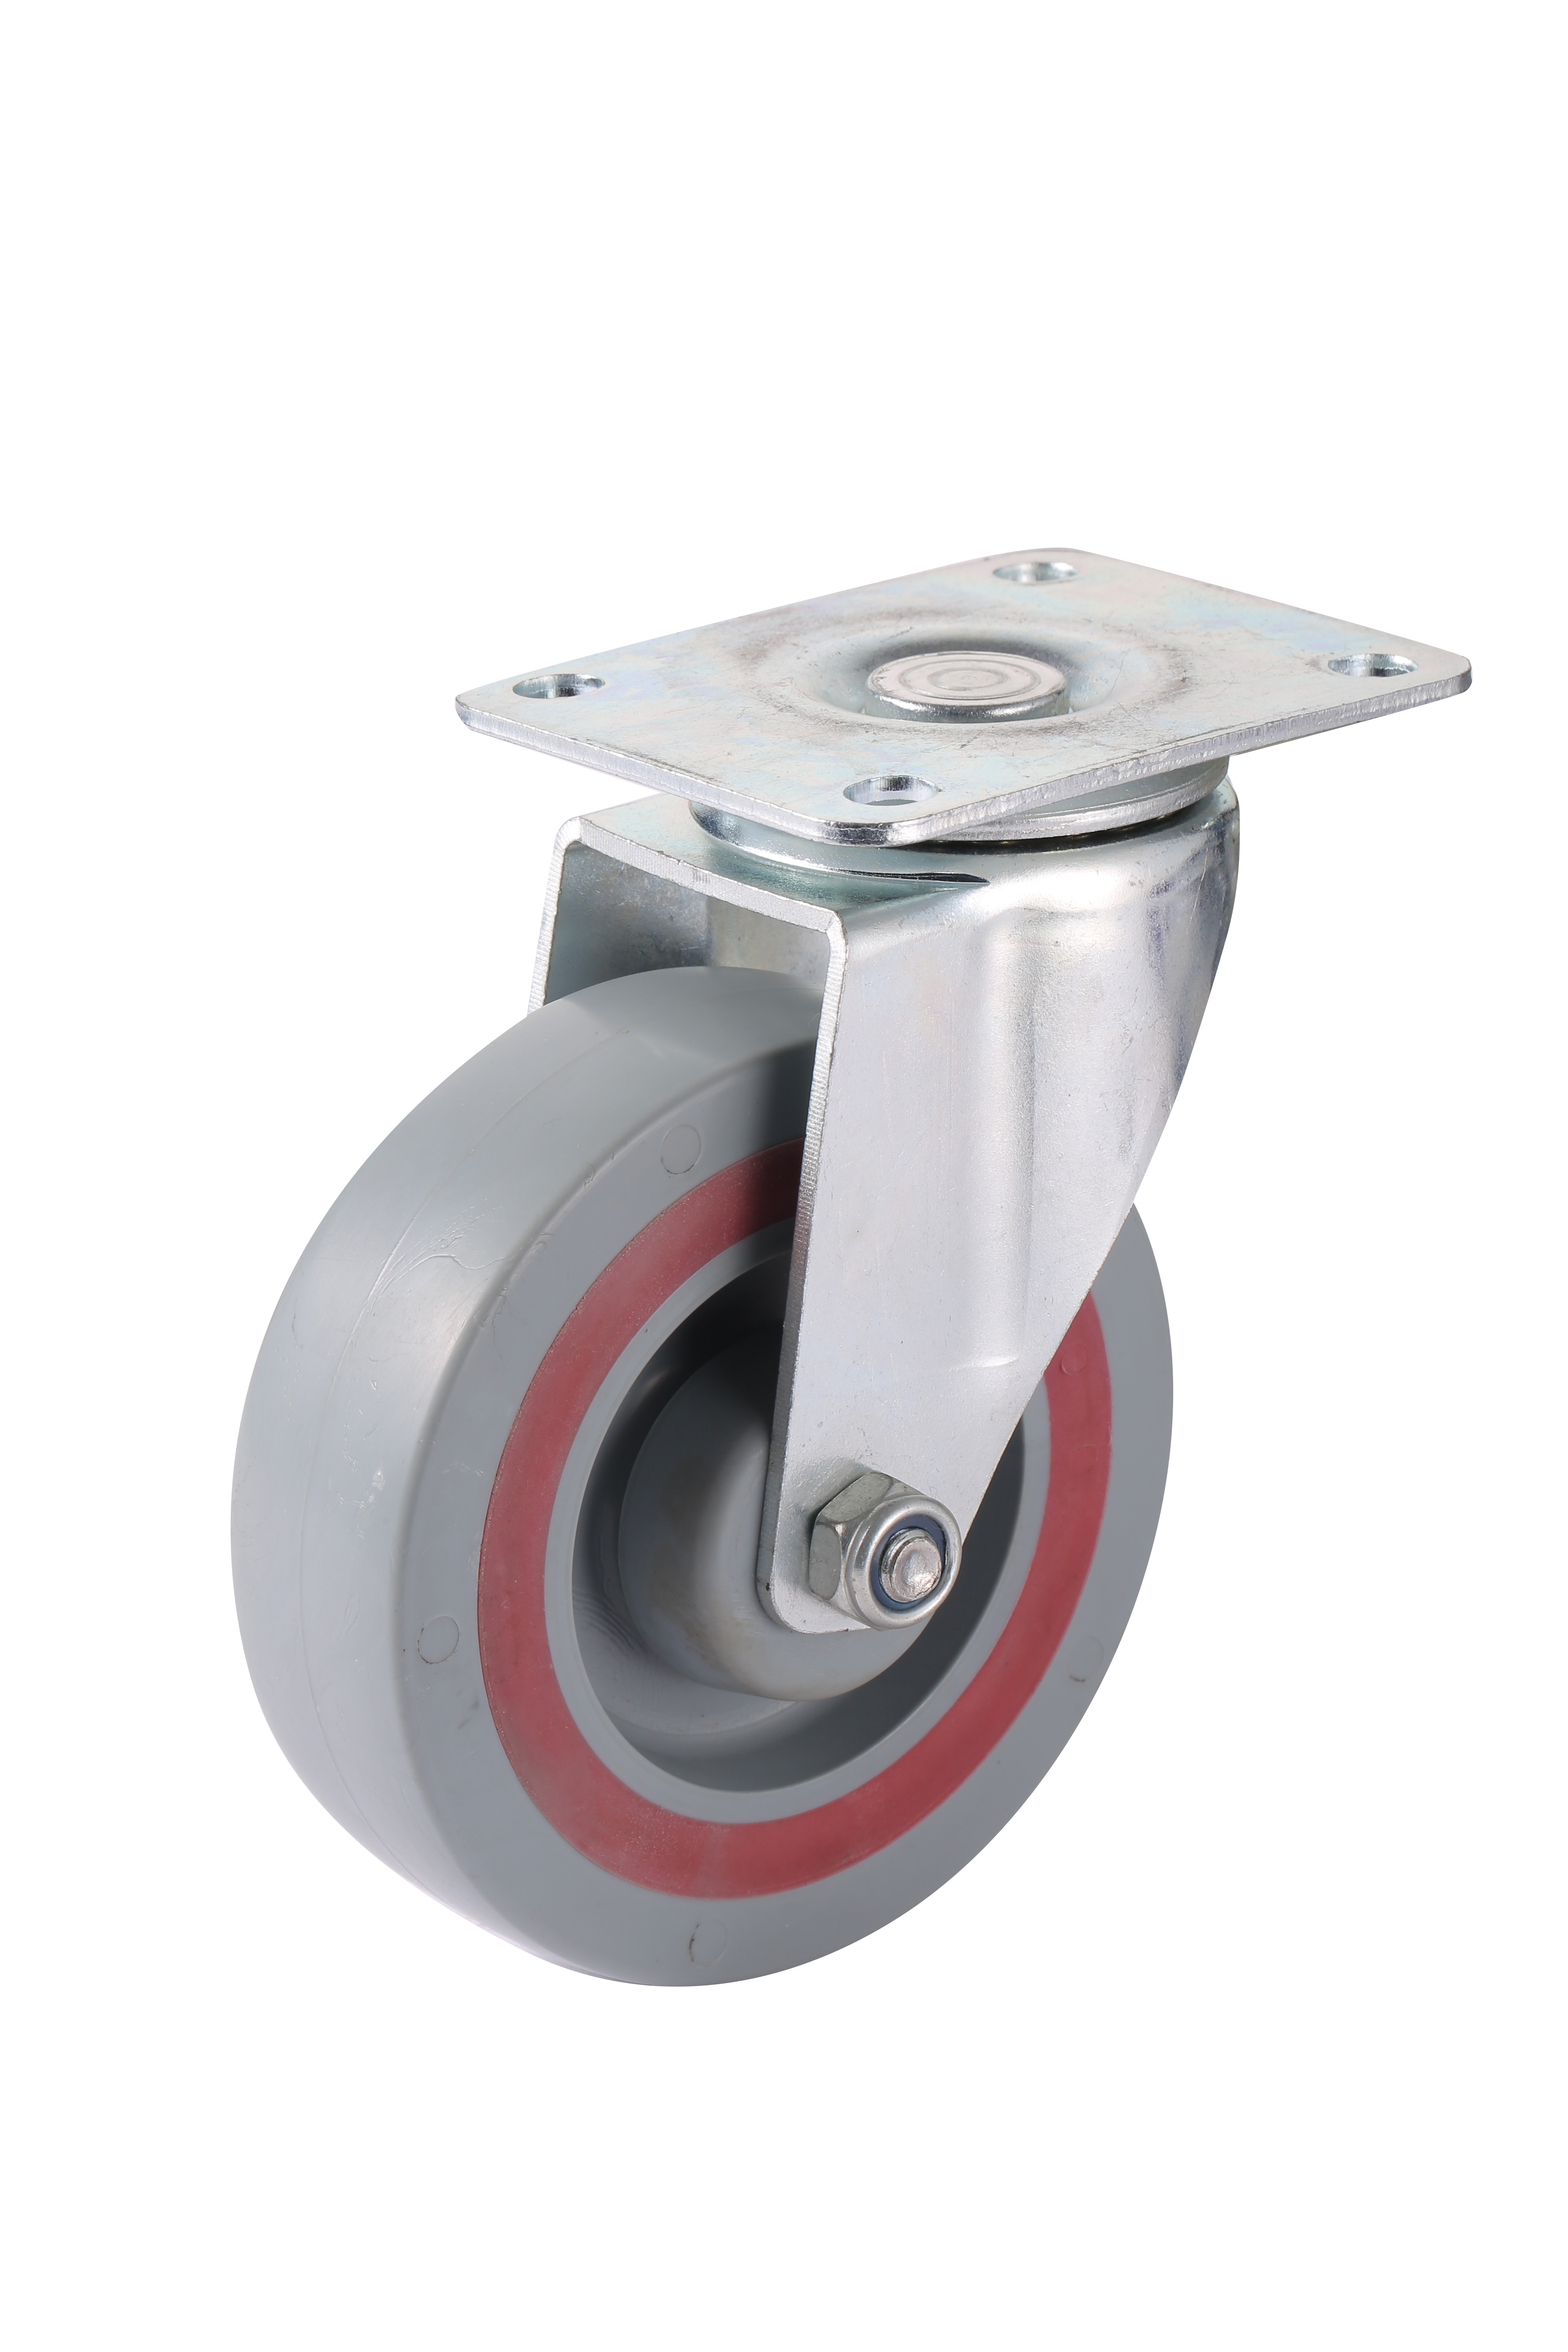 China5 inch medium sandwich swivel small casters wheels